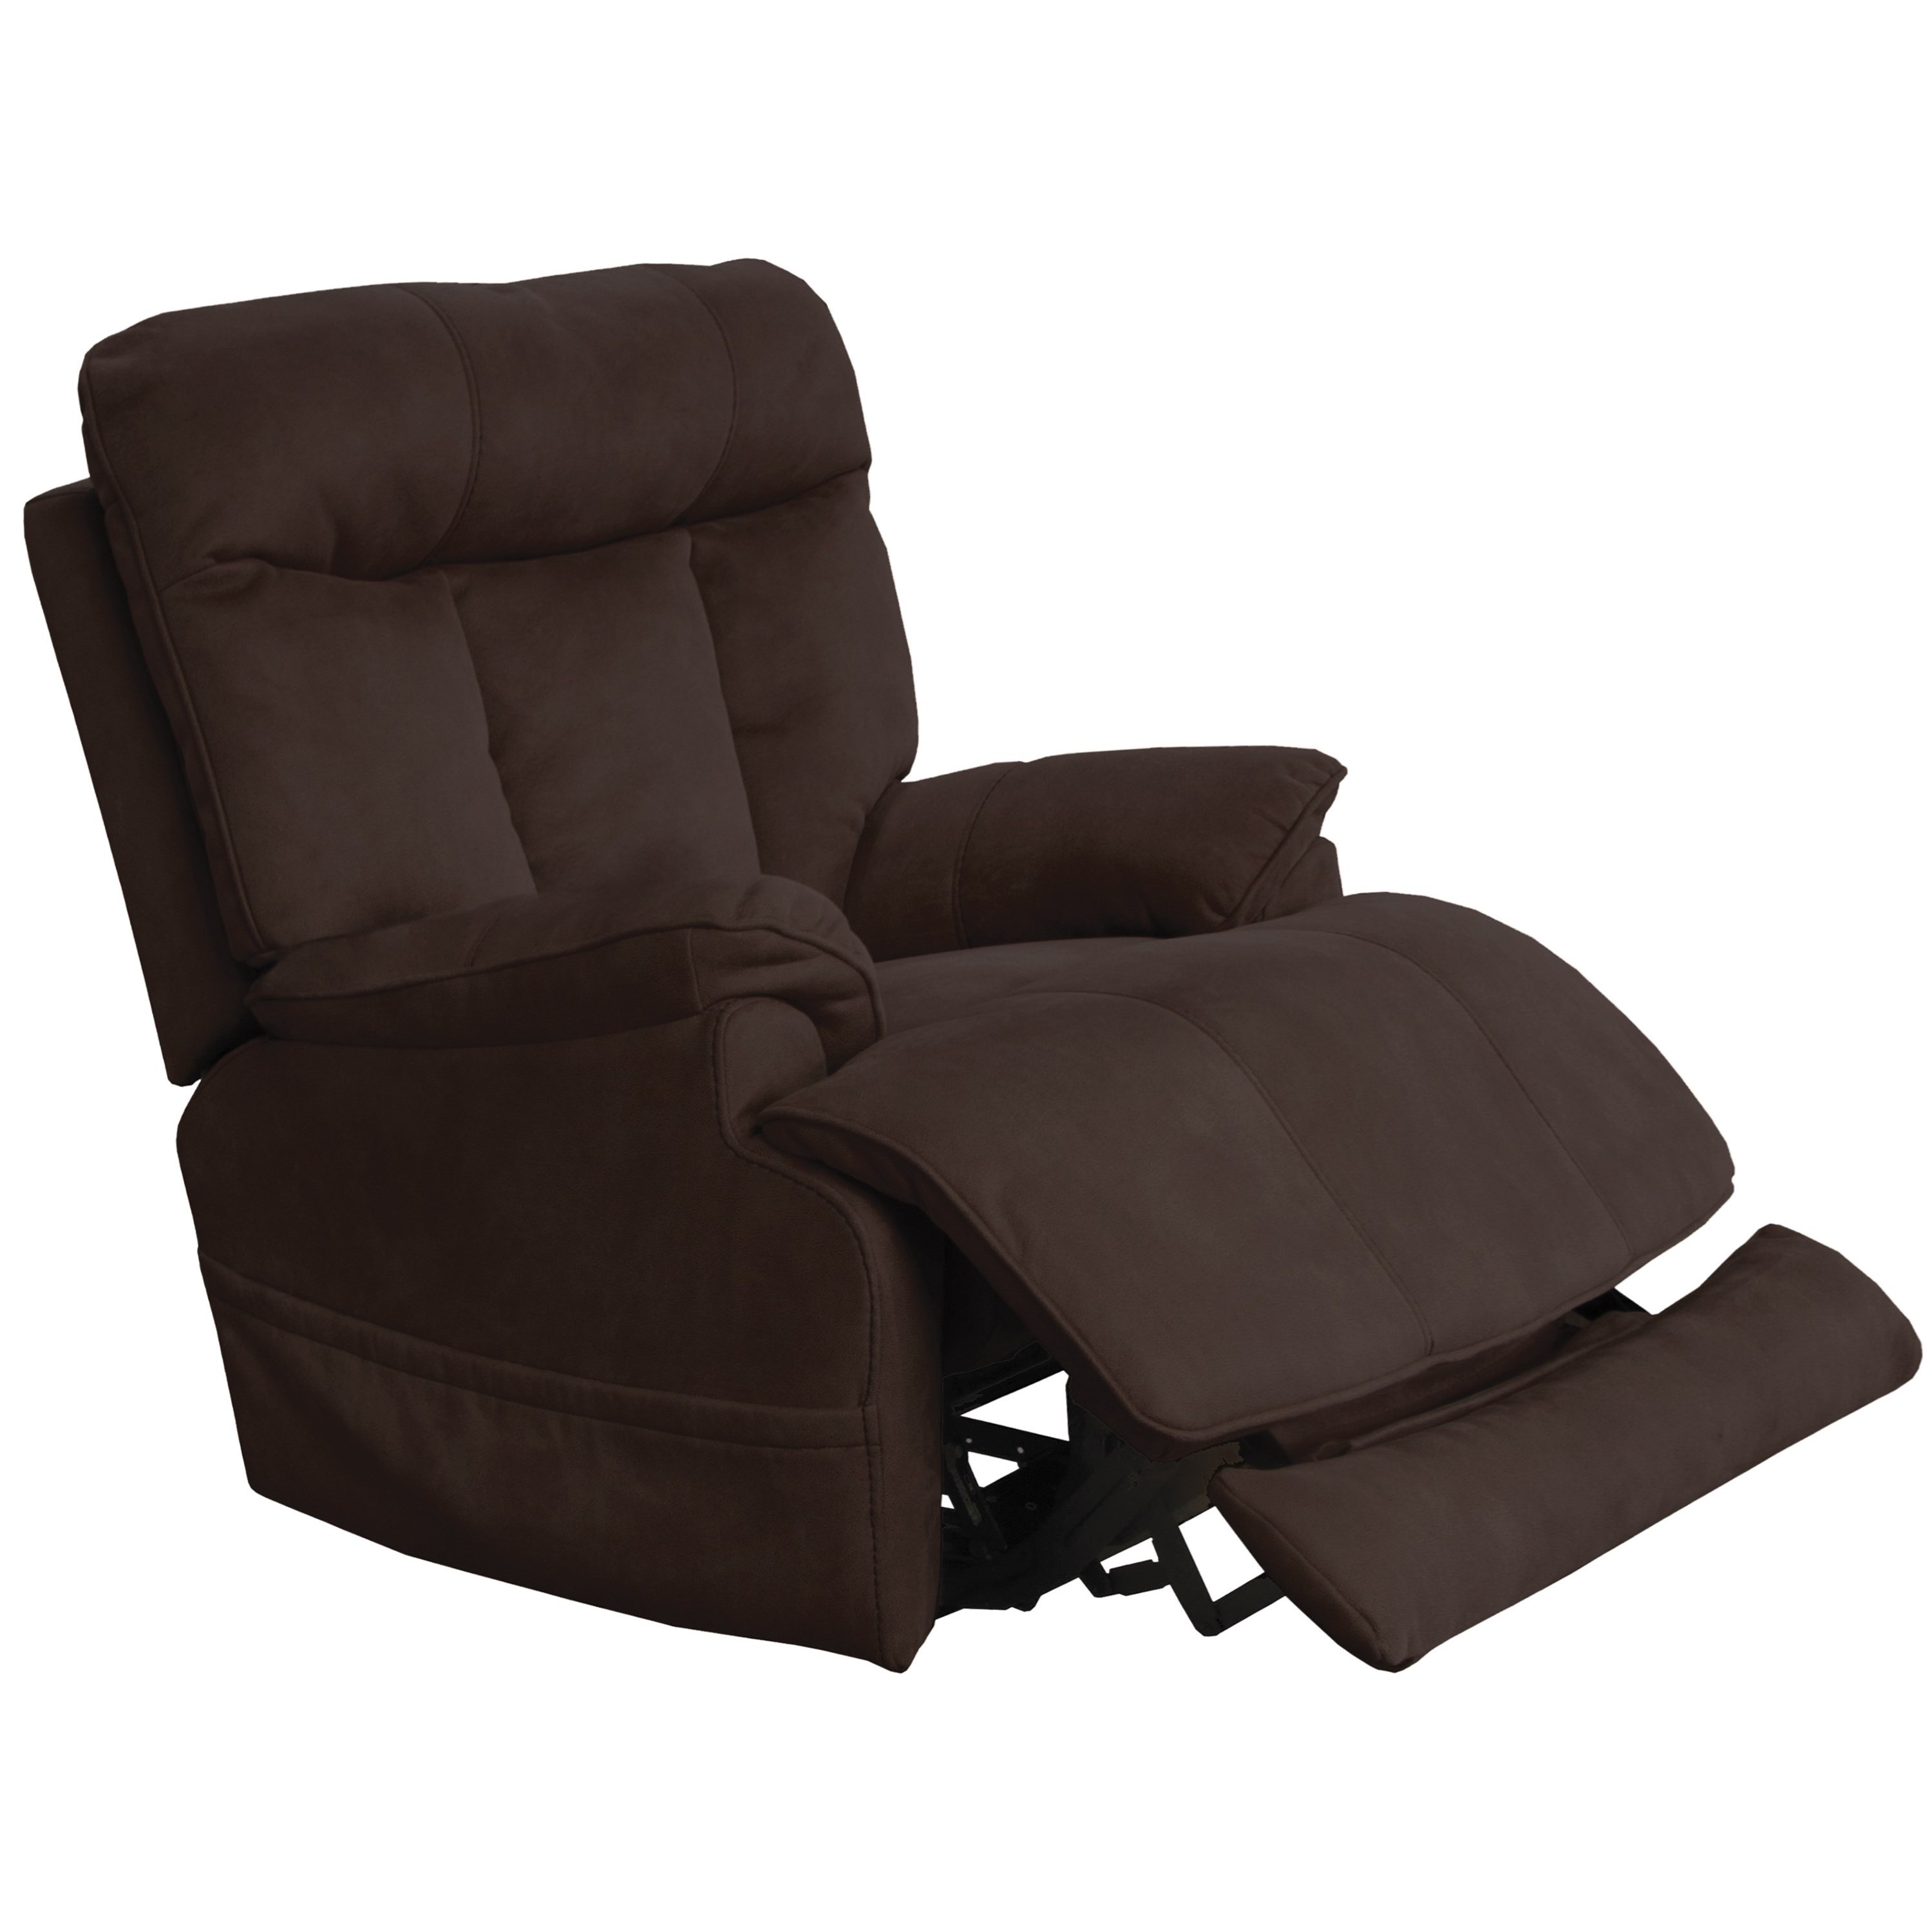 Anders Power Lay Flat Recliner by Catnapper at Northeast Factory Direct